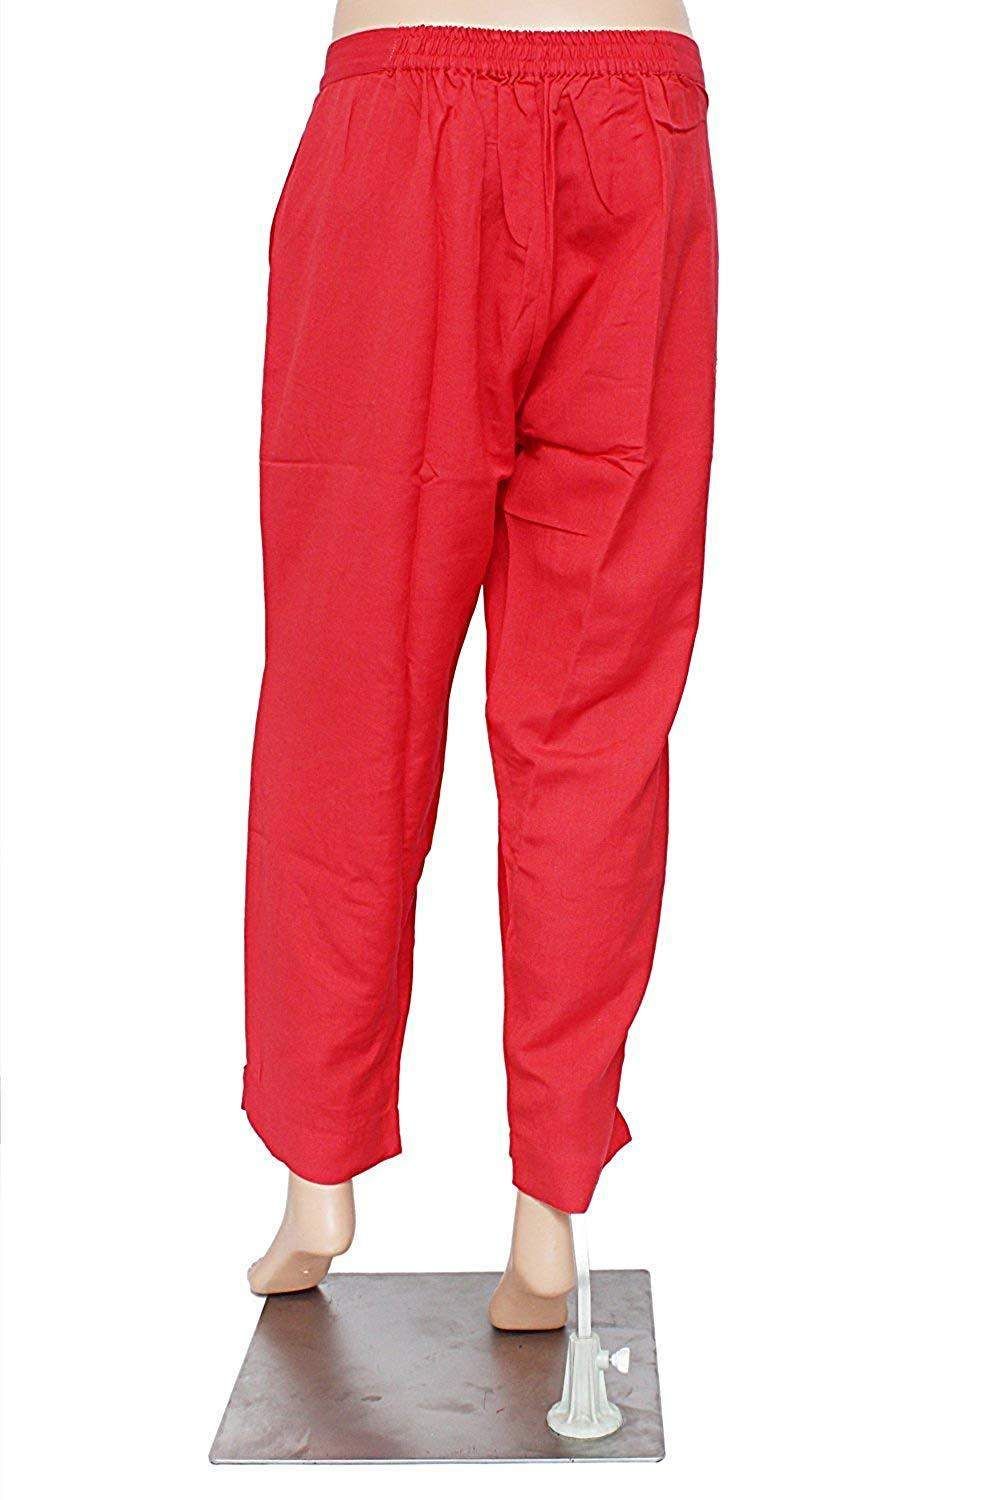 Stylish Rayon Cotton Plain Solid Pants Trousers (Red, X-Large)